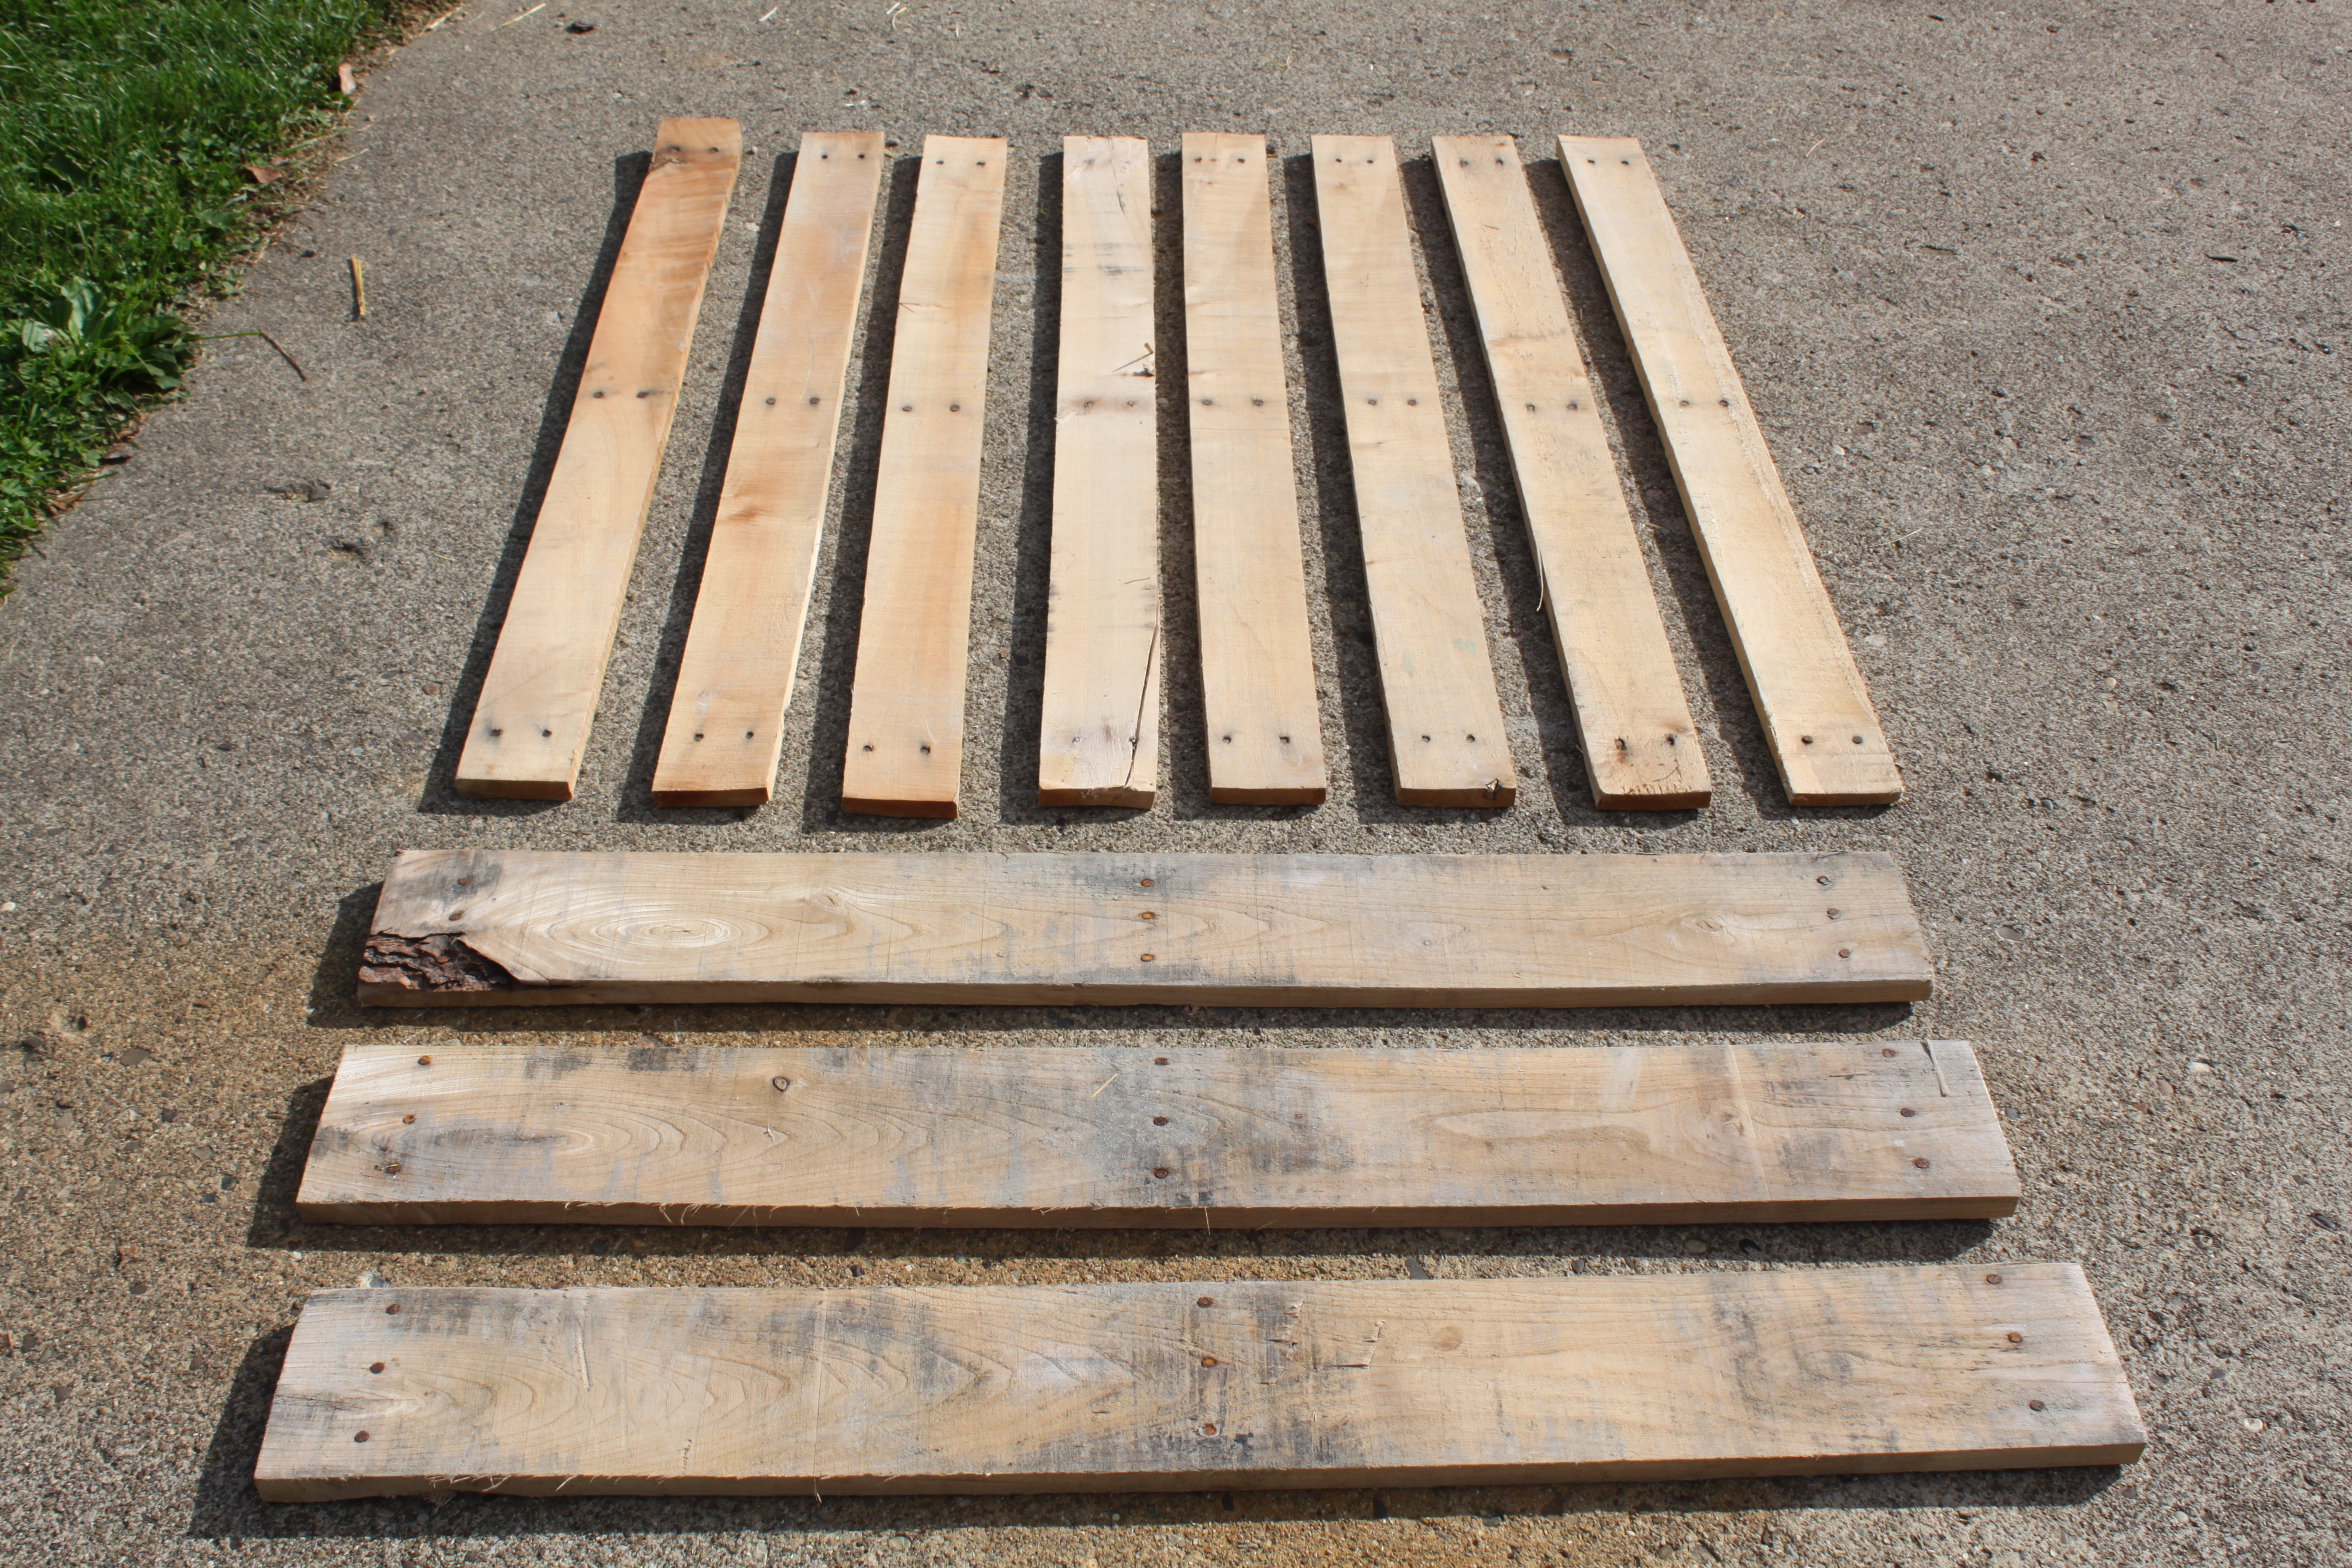 A Pallet Like The One Above Can Be Quickly Disassembled With Reciprocating Saw